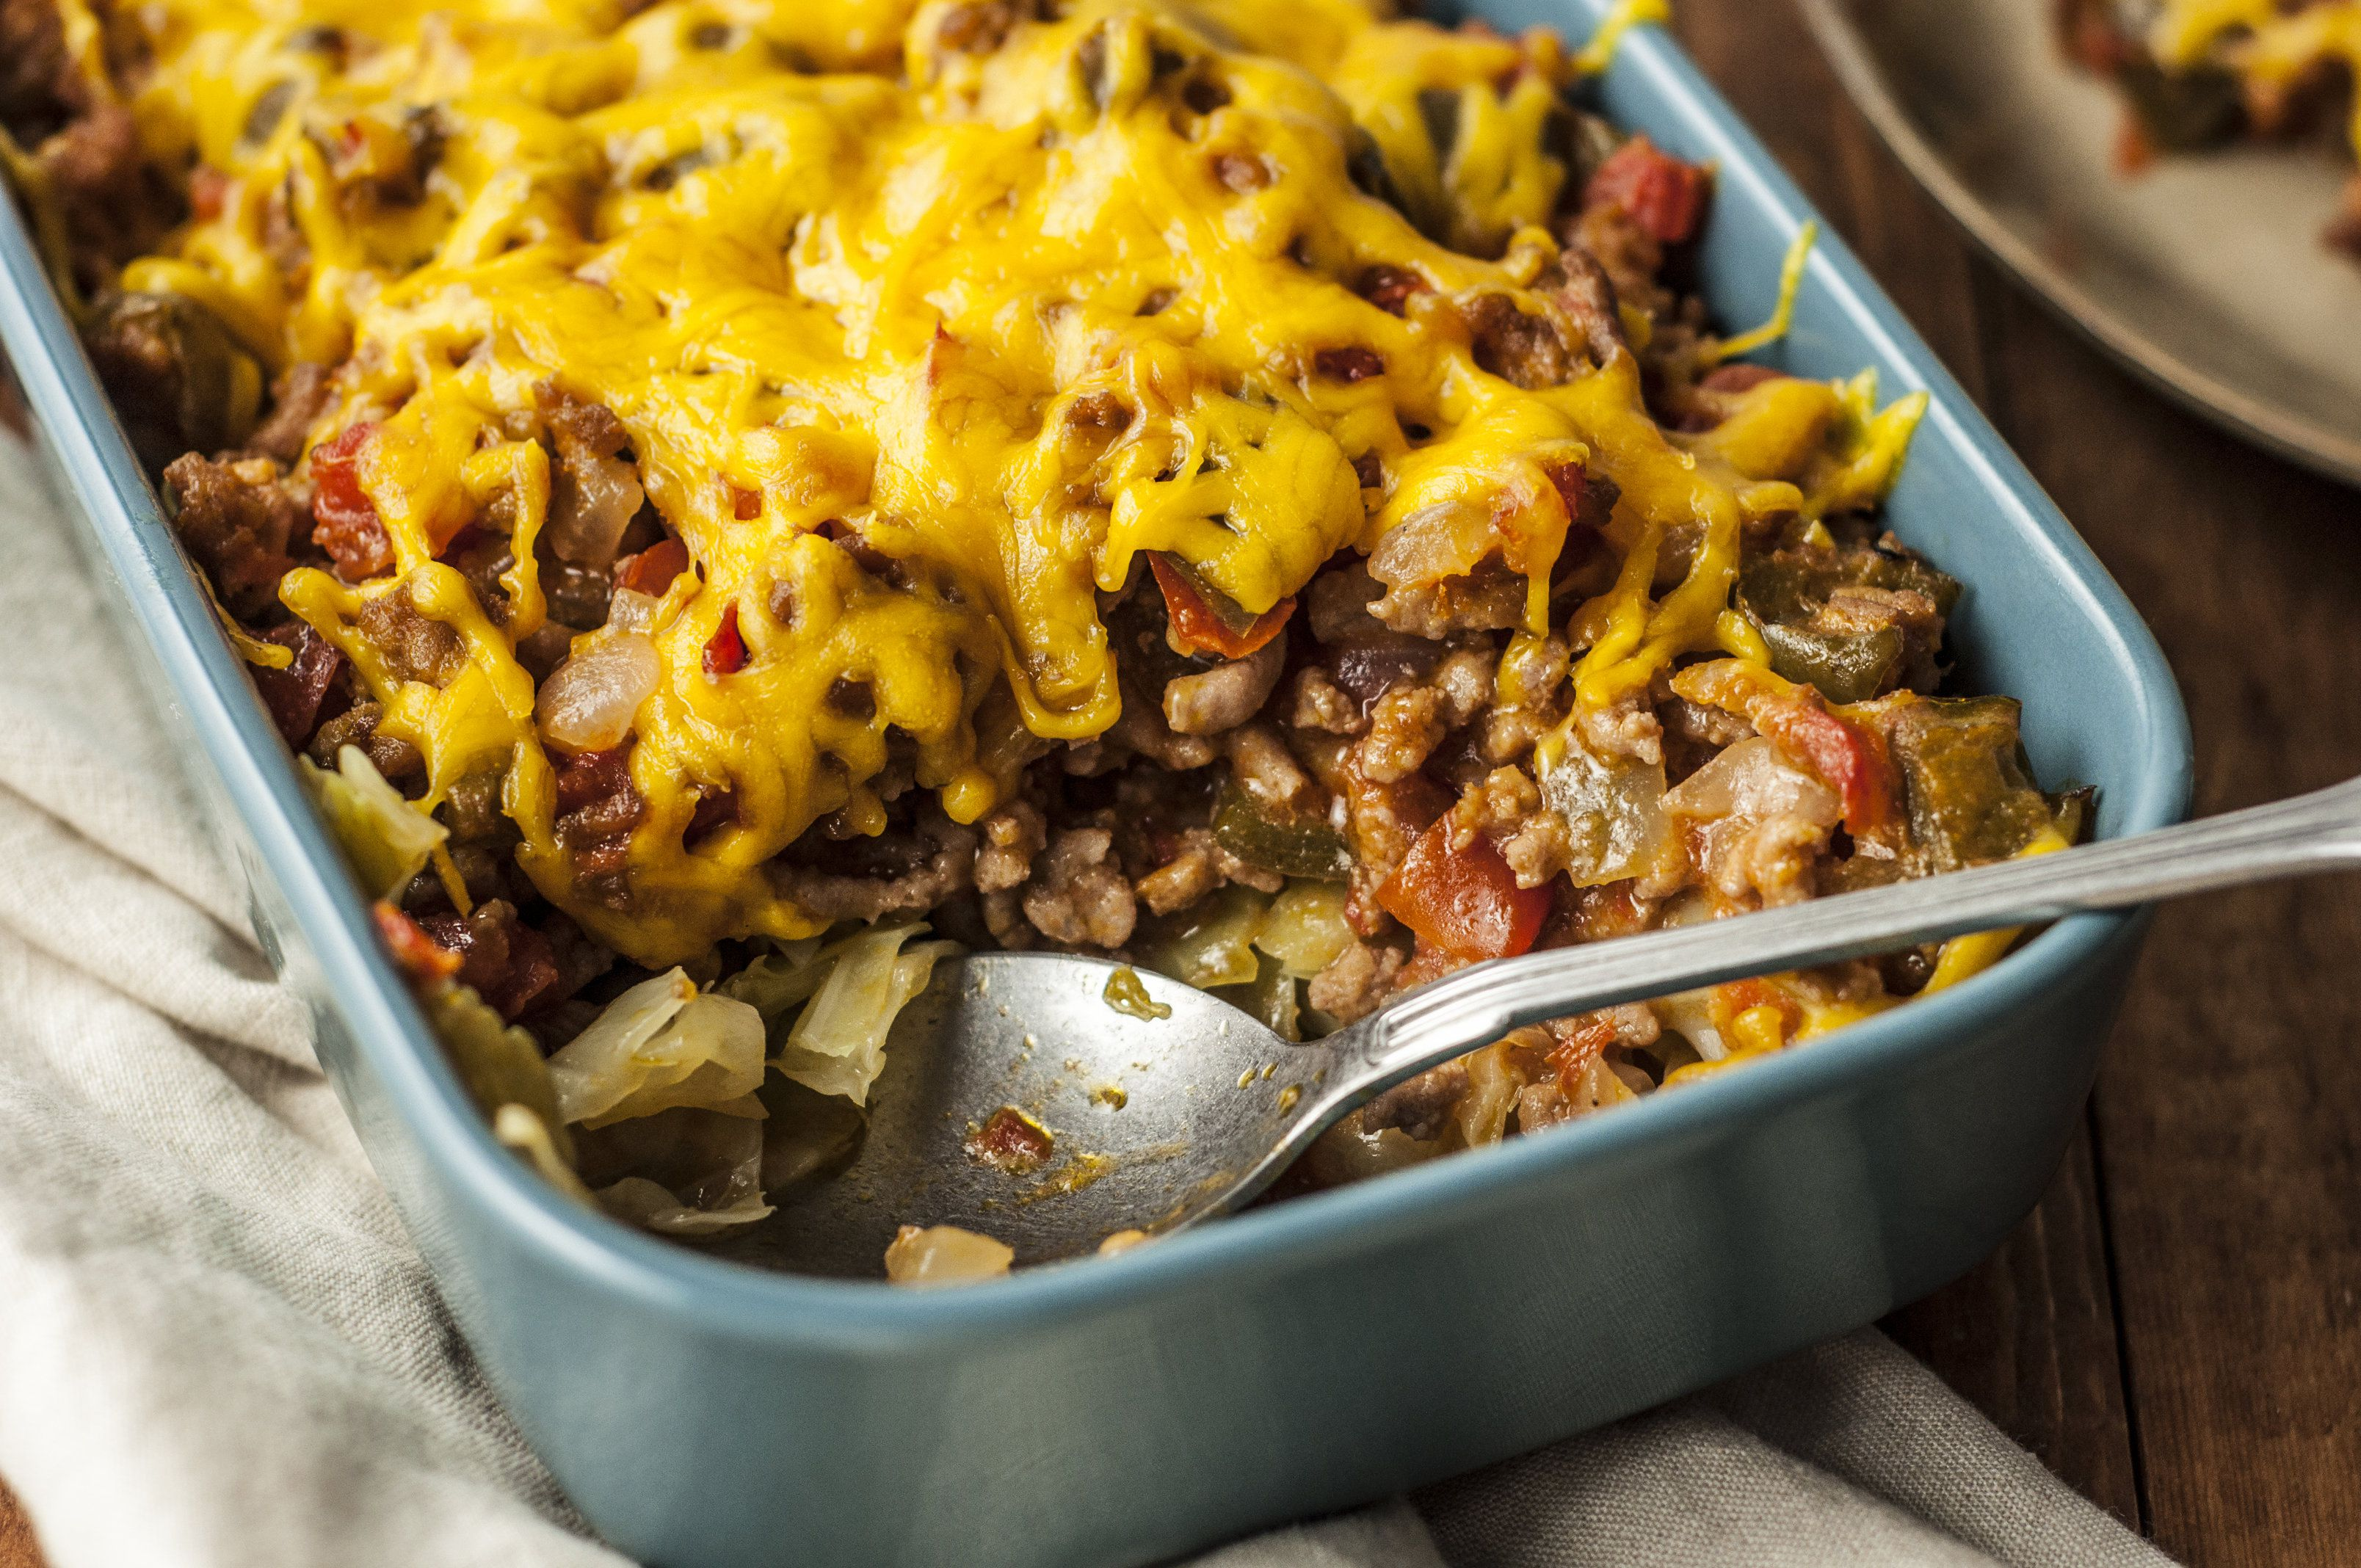 Ground beef and cabbage casserole with melted cheese